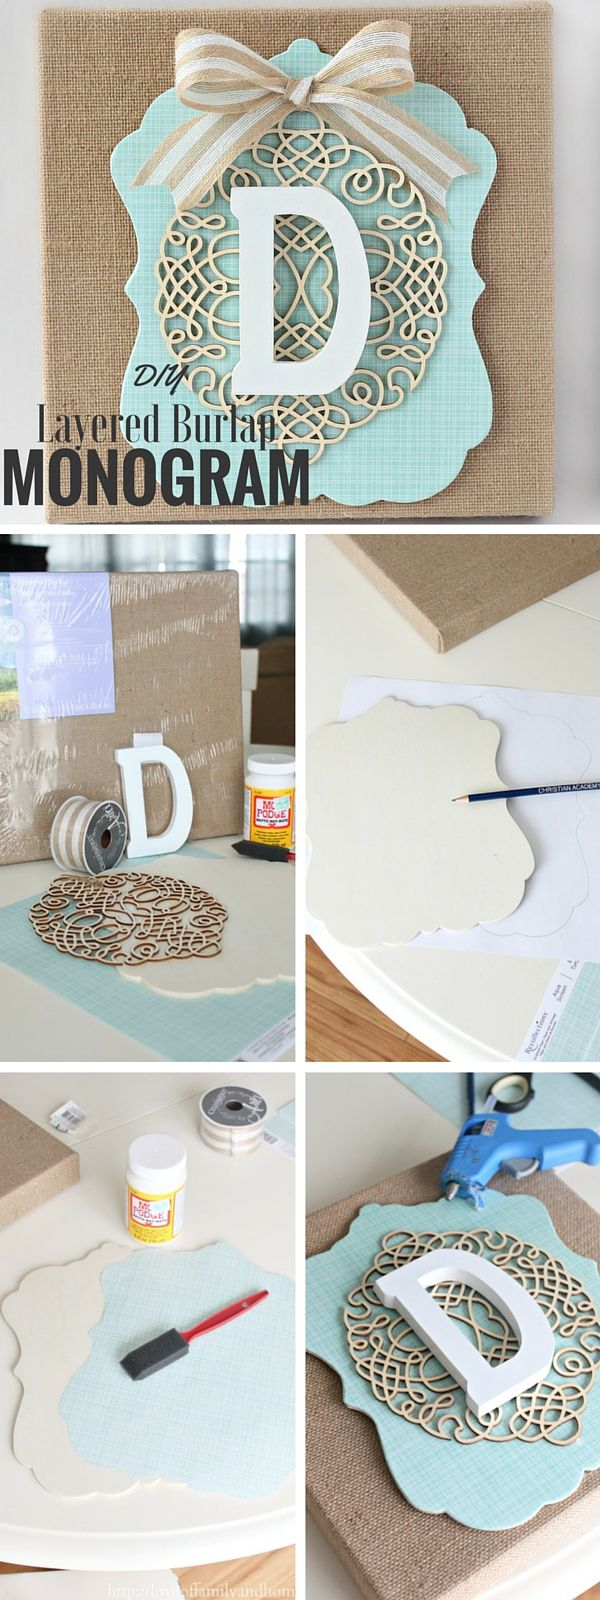 Check out the tutorial: #DIY Layered Burlap Monogram @istandarddesign